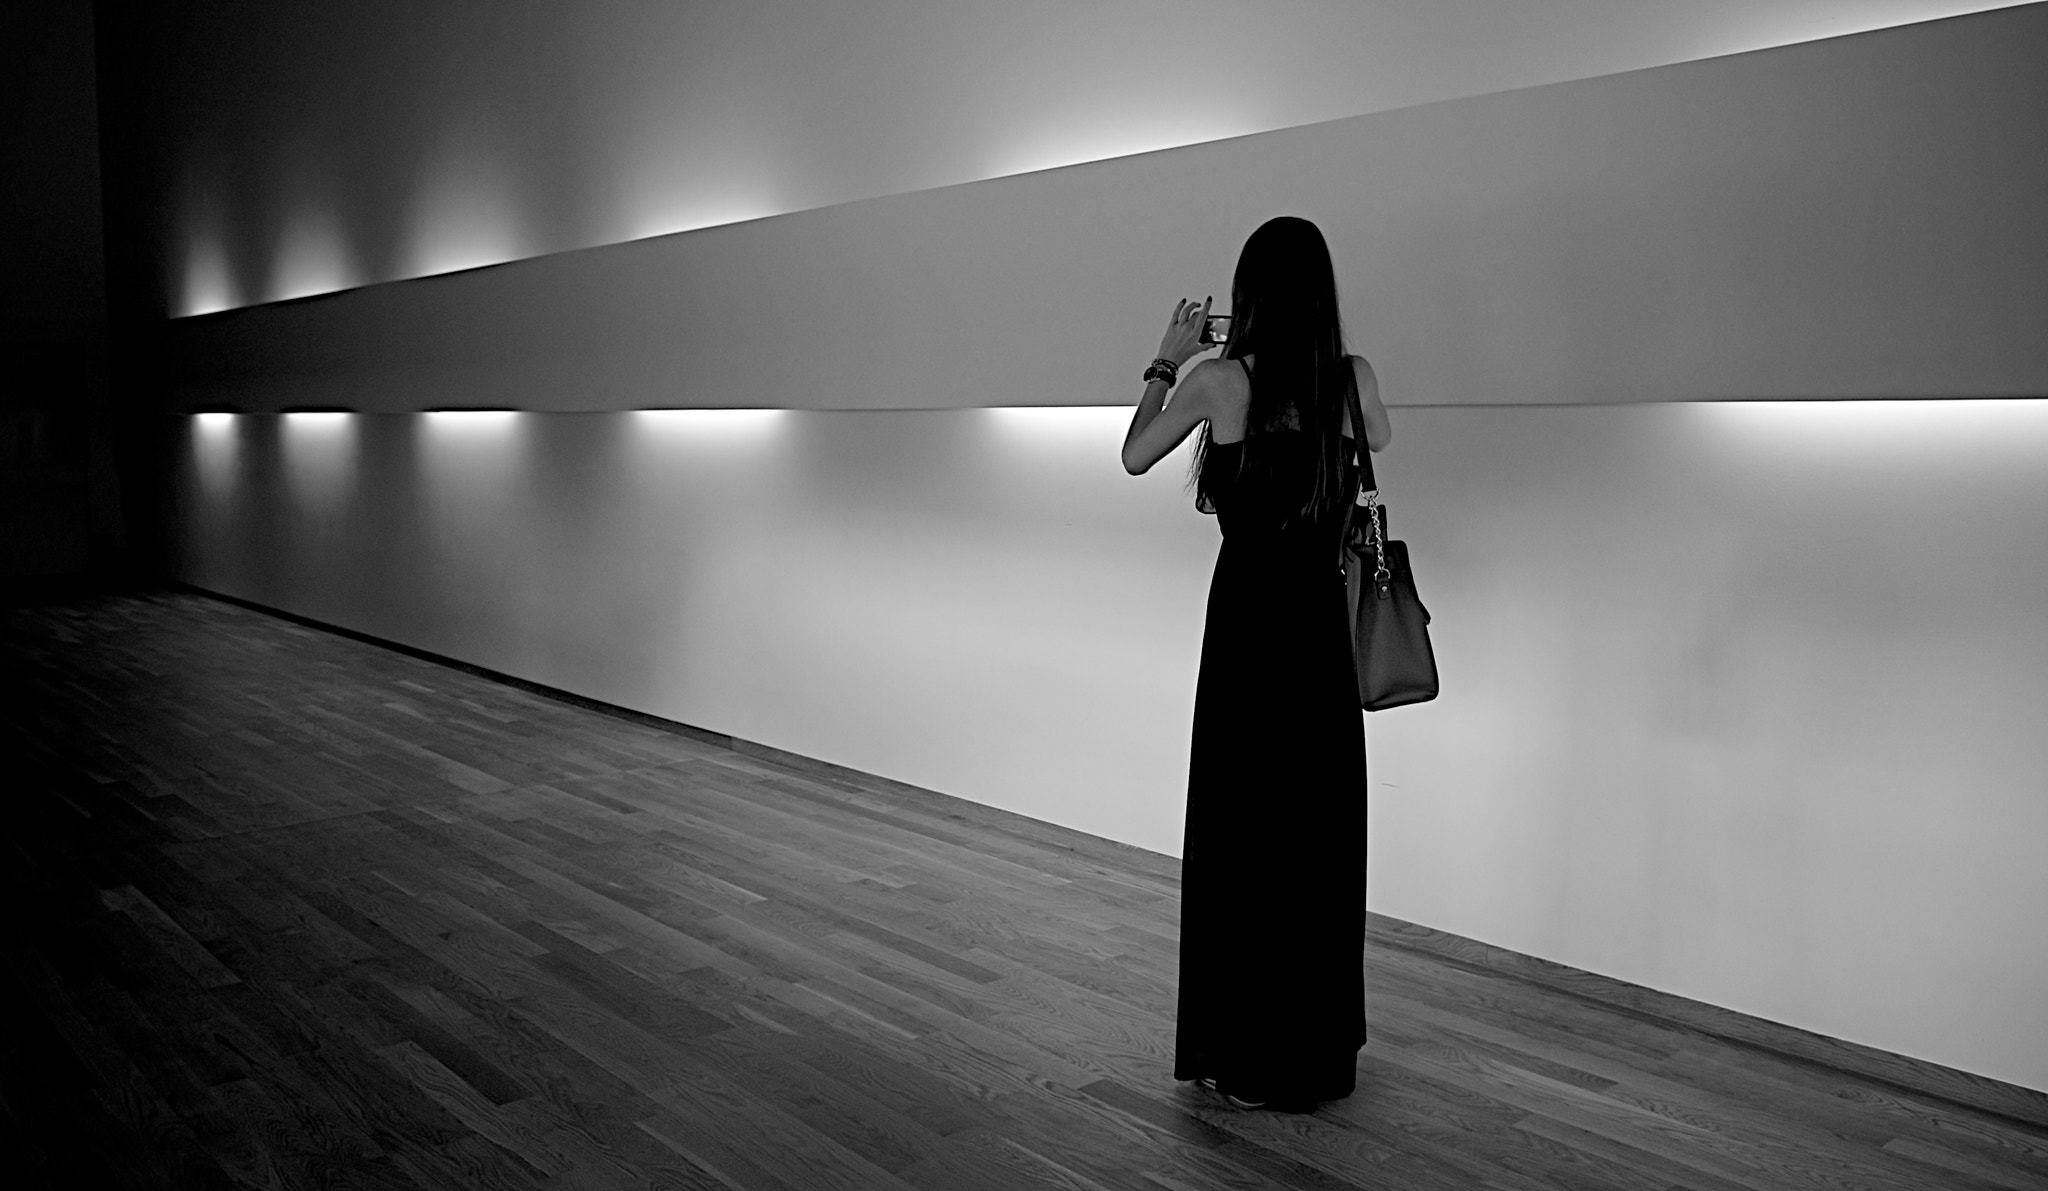 Photograph Lightpoints balance by Magdalena Roeseler on 500px